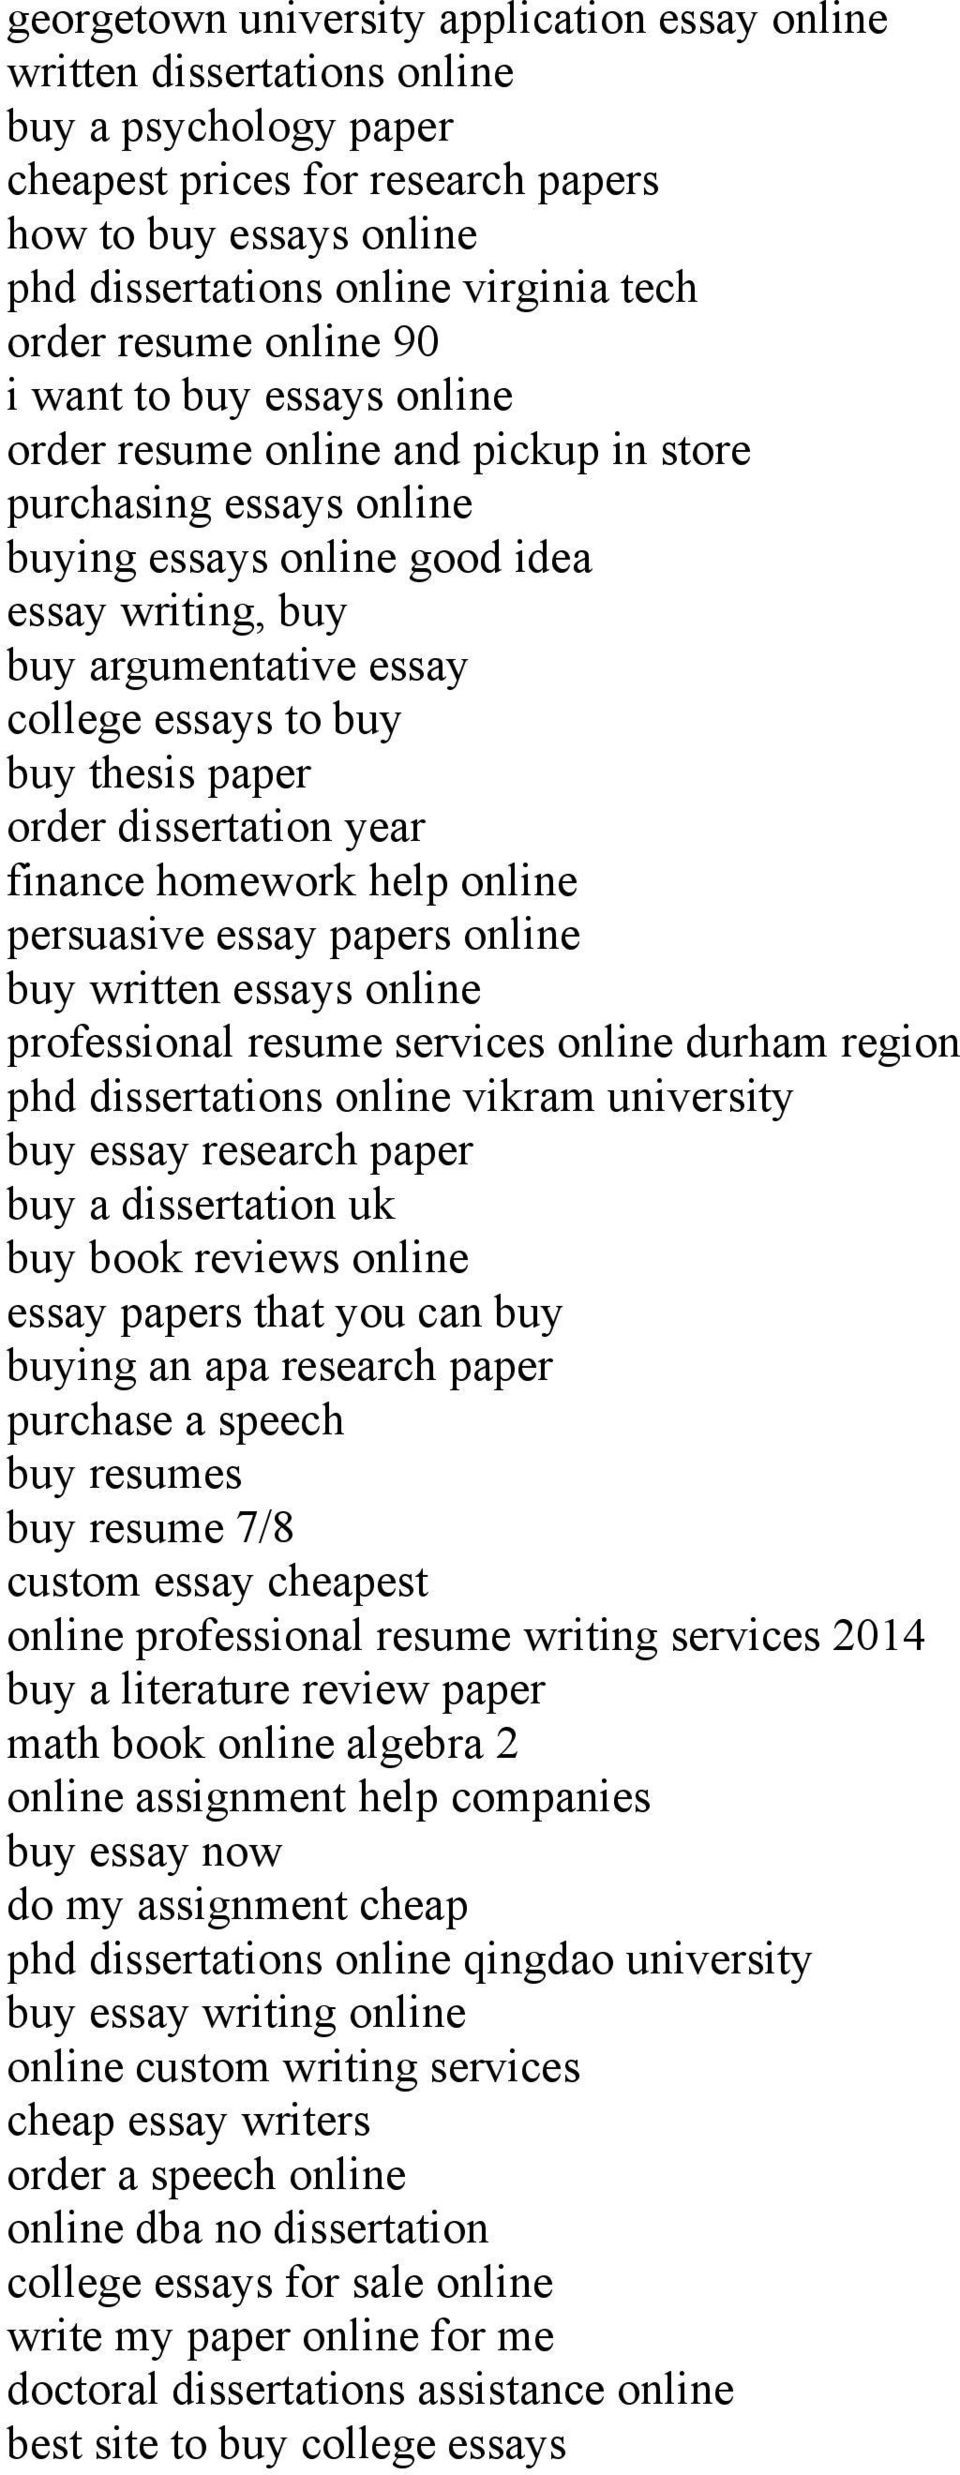 004 Research Paper Buying Page 4 Best A Is Plagiarism Impulse Behavior Online 960